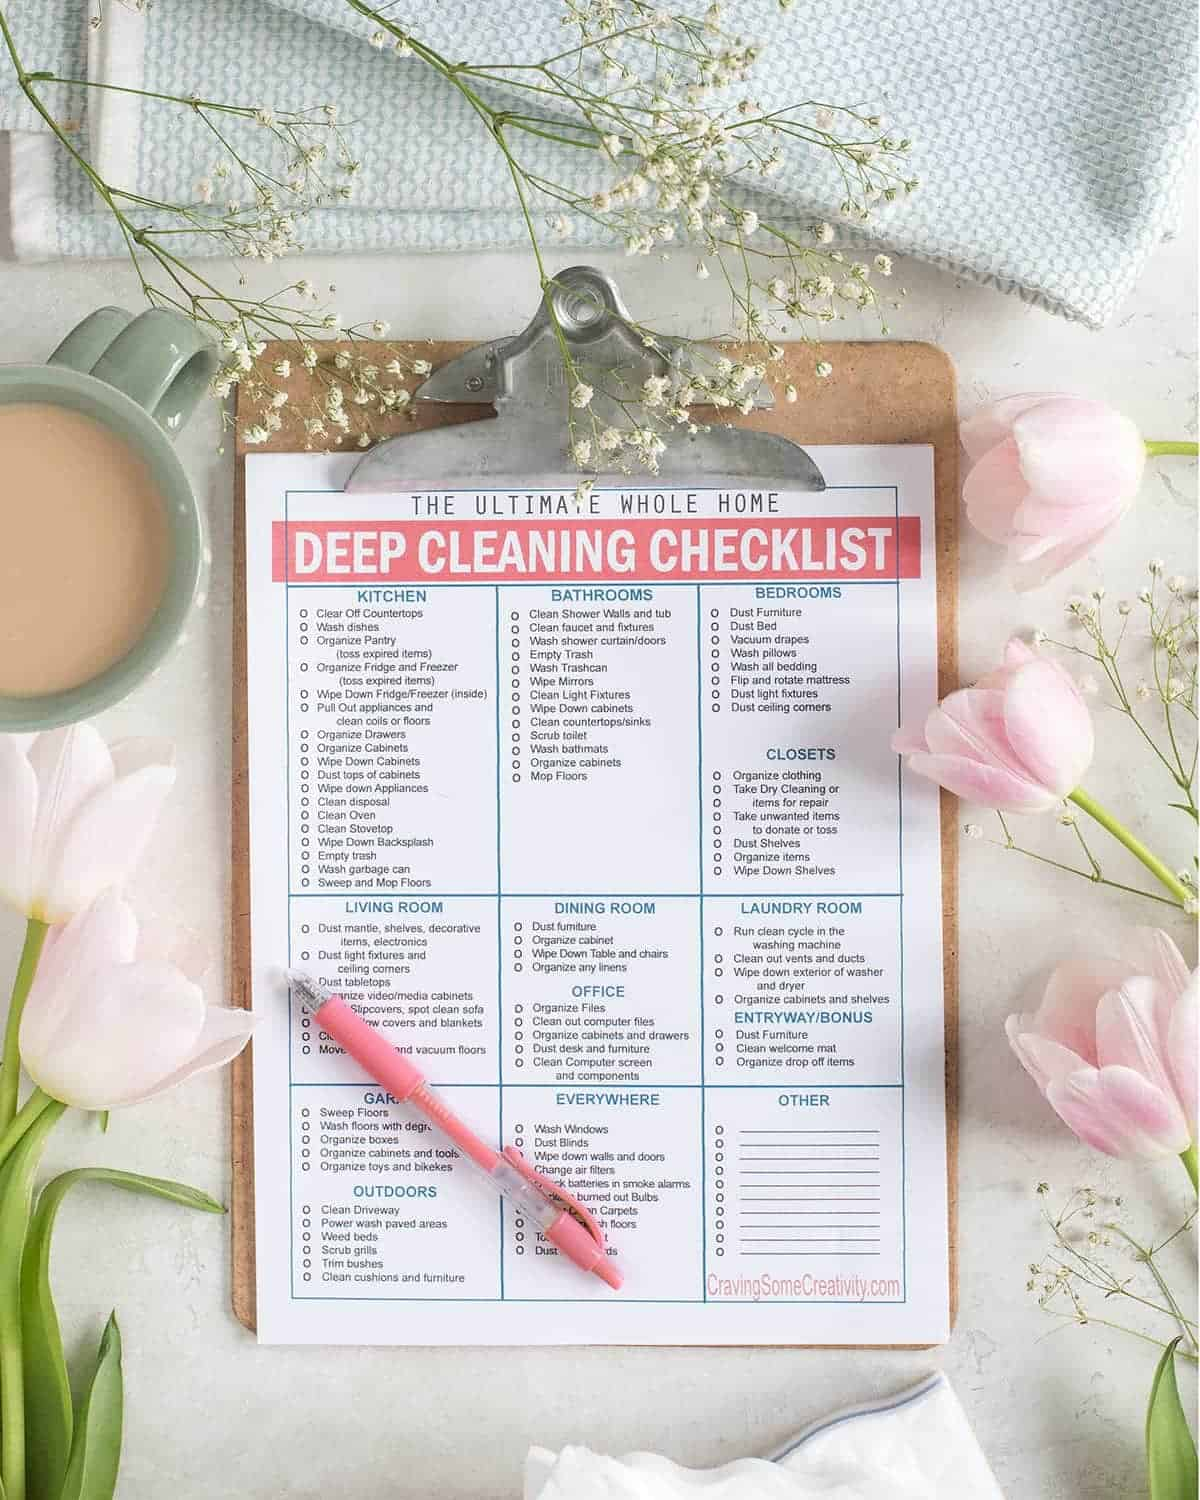 Whole Home Cleaning Printable Checklist on clipboard with pink pen. Norwex cloth, baby's breath, pink tulips and coffee cup in background.